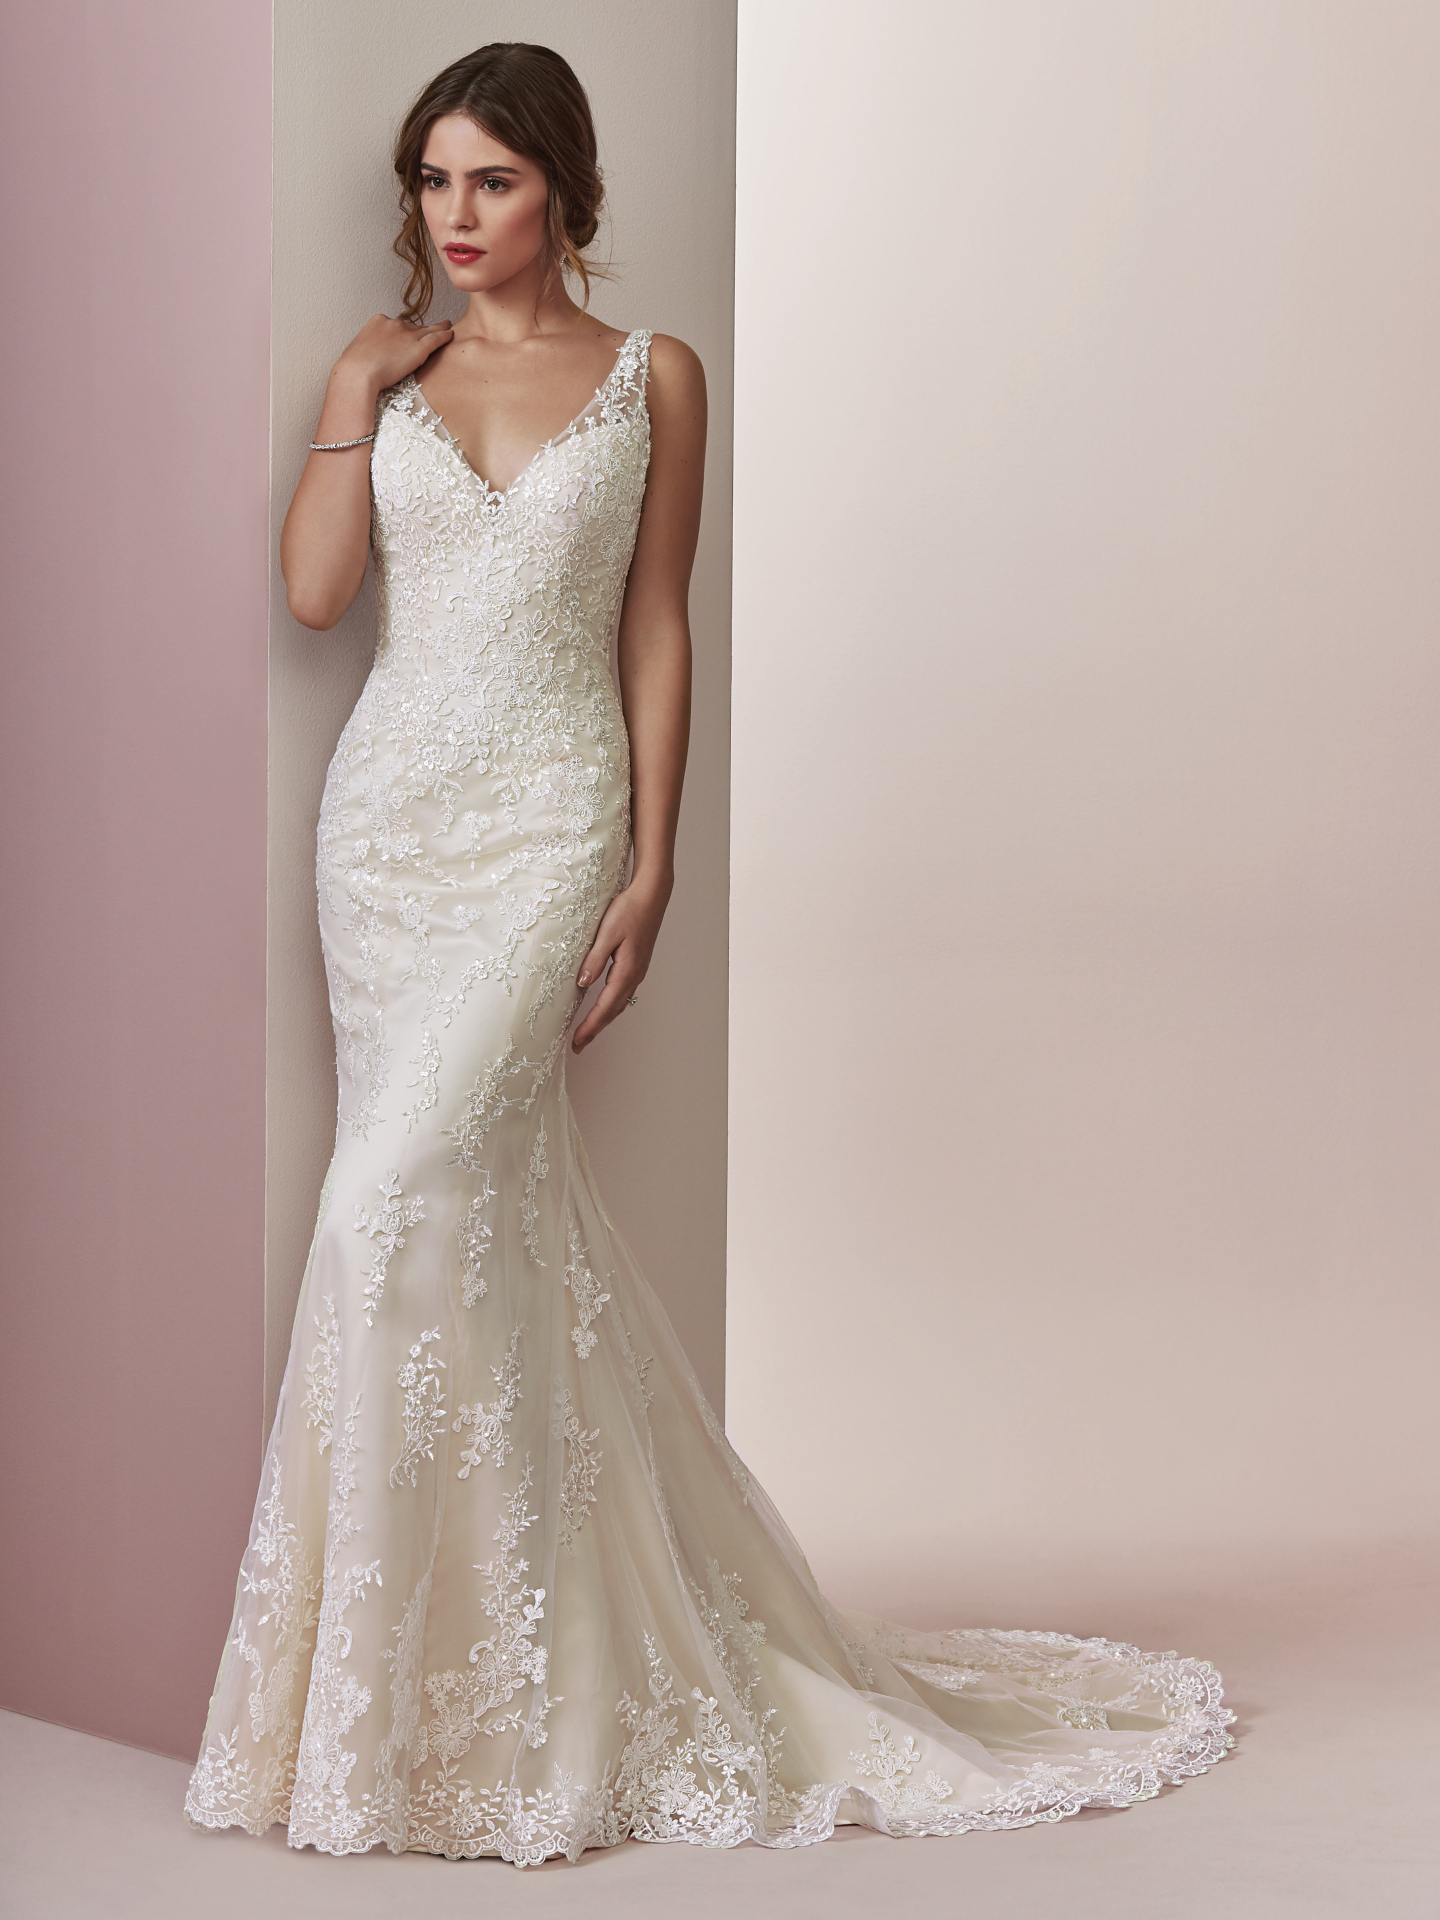 10 relaxed wedding dresses from our Camille collection by Rebecca Ingram - Choose Connie for sweet, simple, and chic.